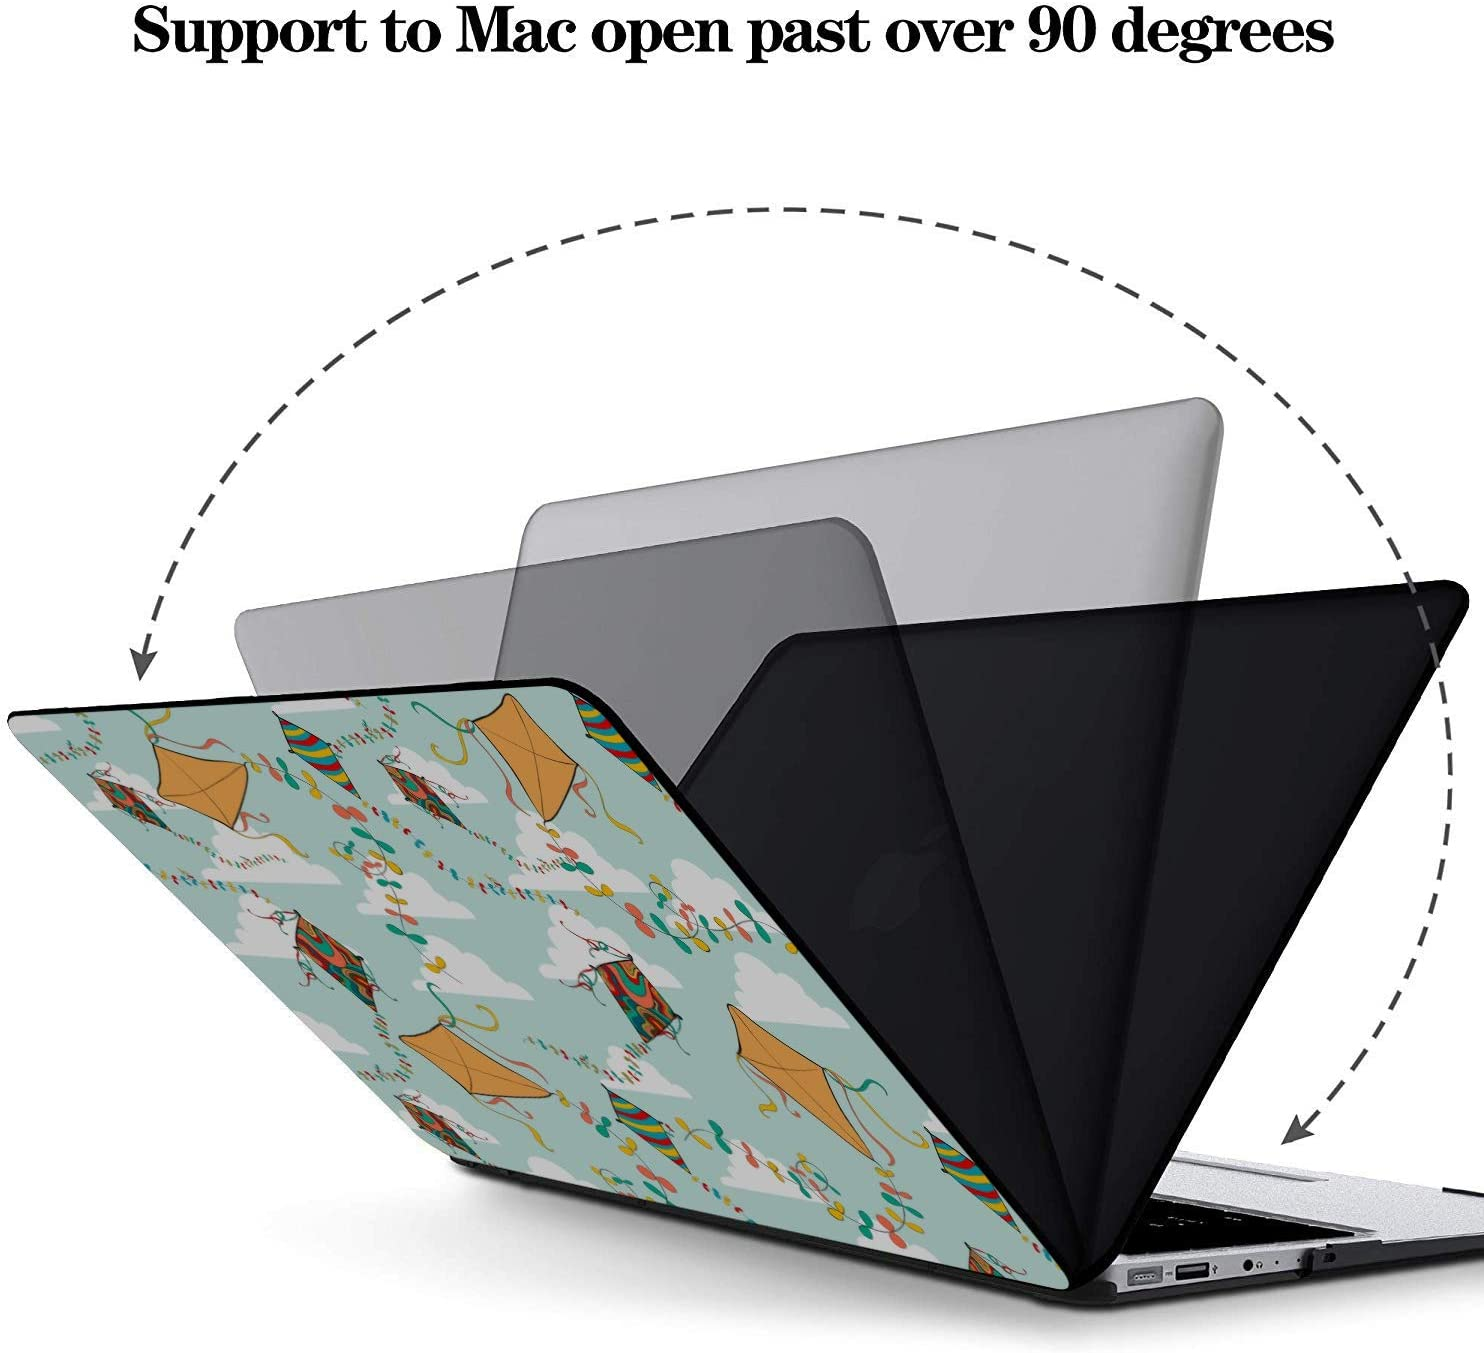 MacBook A1466 Case Spring Children Play Game Toy Kite Plastic Hard Shell Compatible Mac Air 11 Pro 13 15 MacBook Case 12 Inch Protection for MacBook 2016-2019 Version